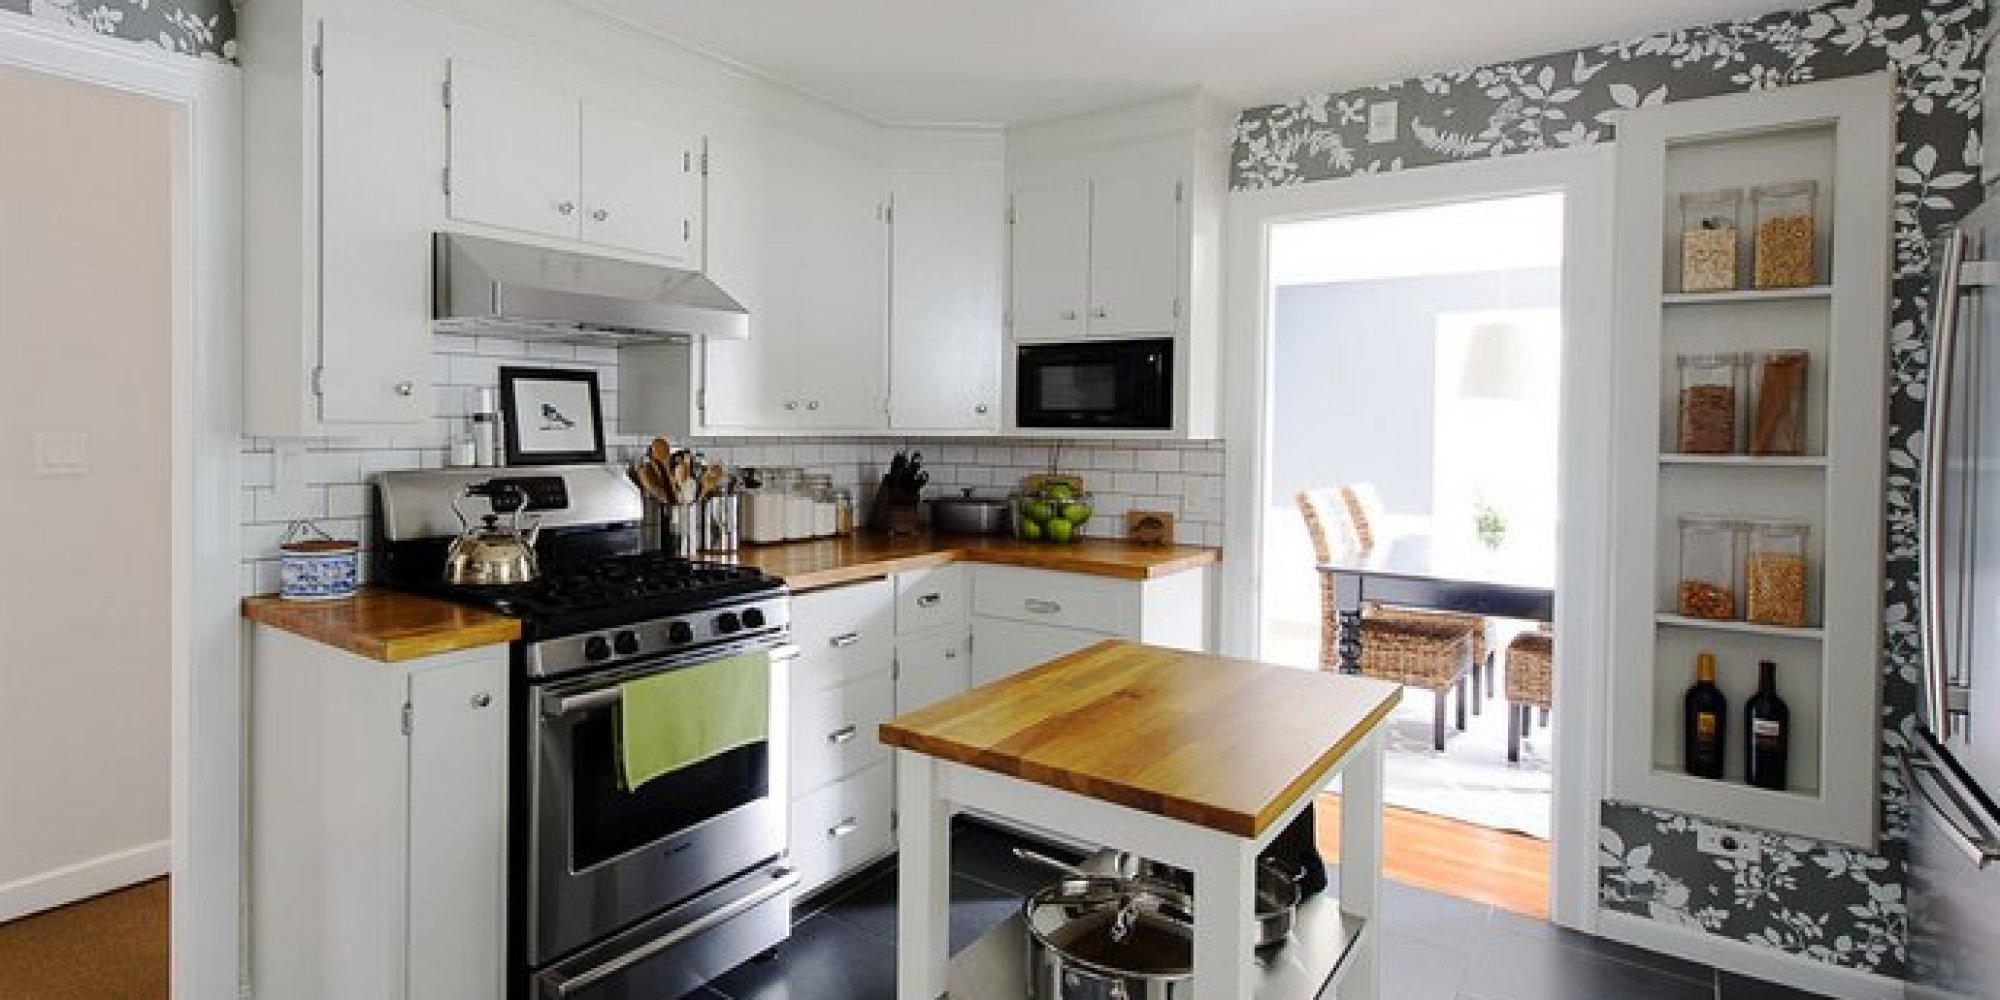 19 inexpensive ways to fix up your kitchen photos huffpost for Kitchen upgrades on a budget